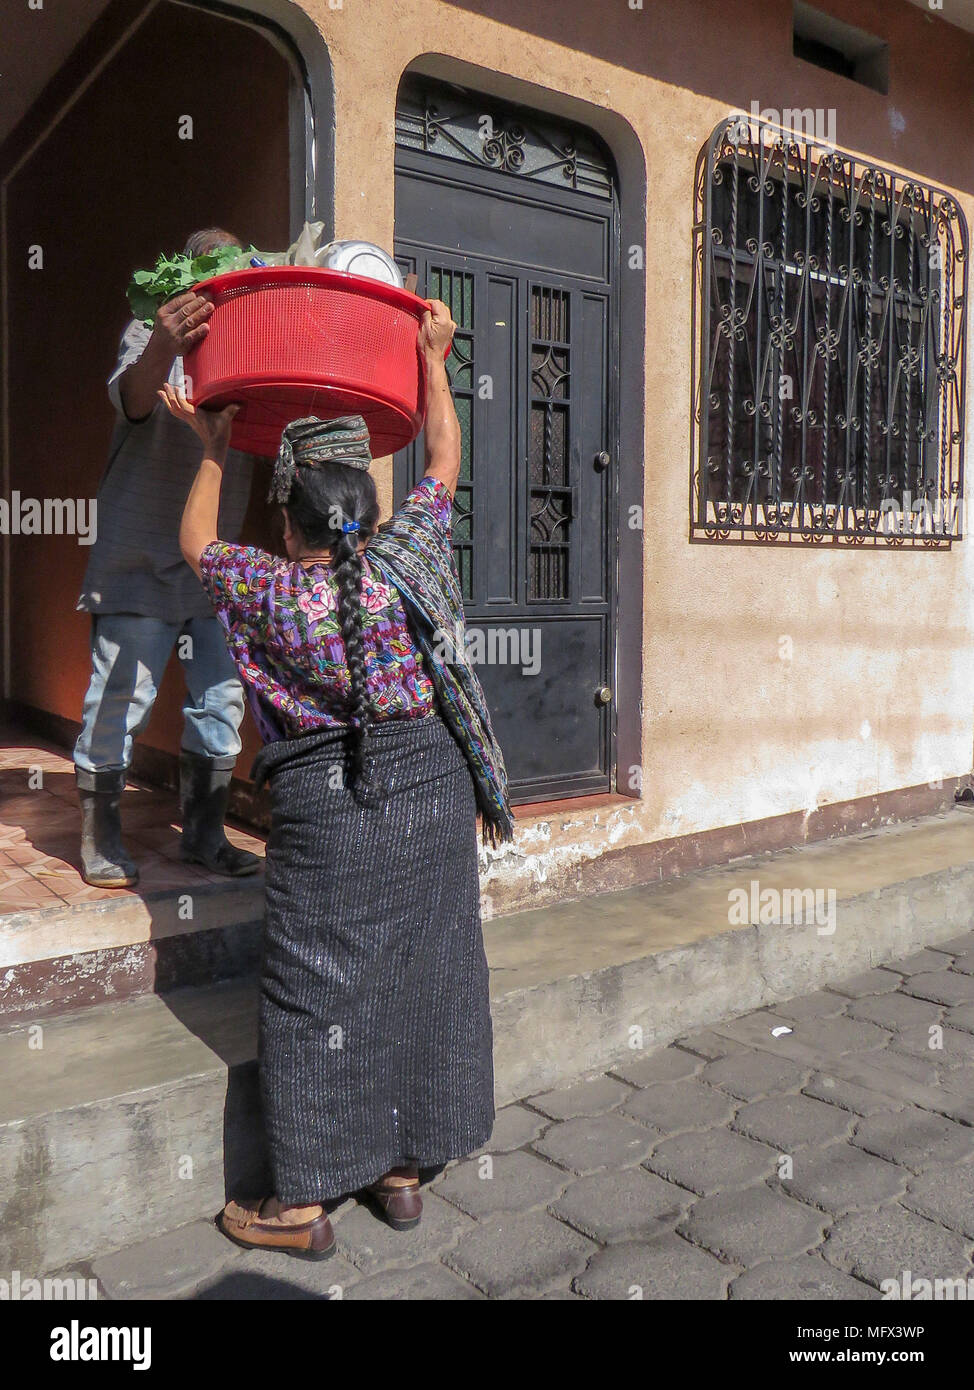 Guatemalan woman after market - Stock Image